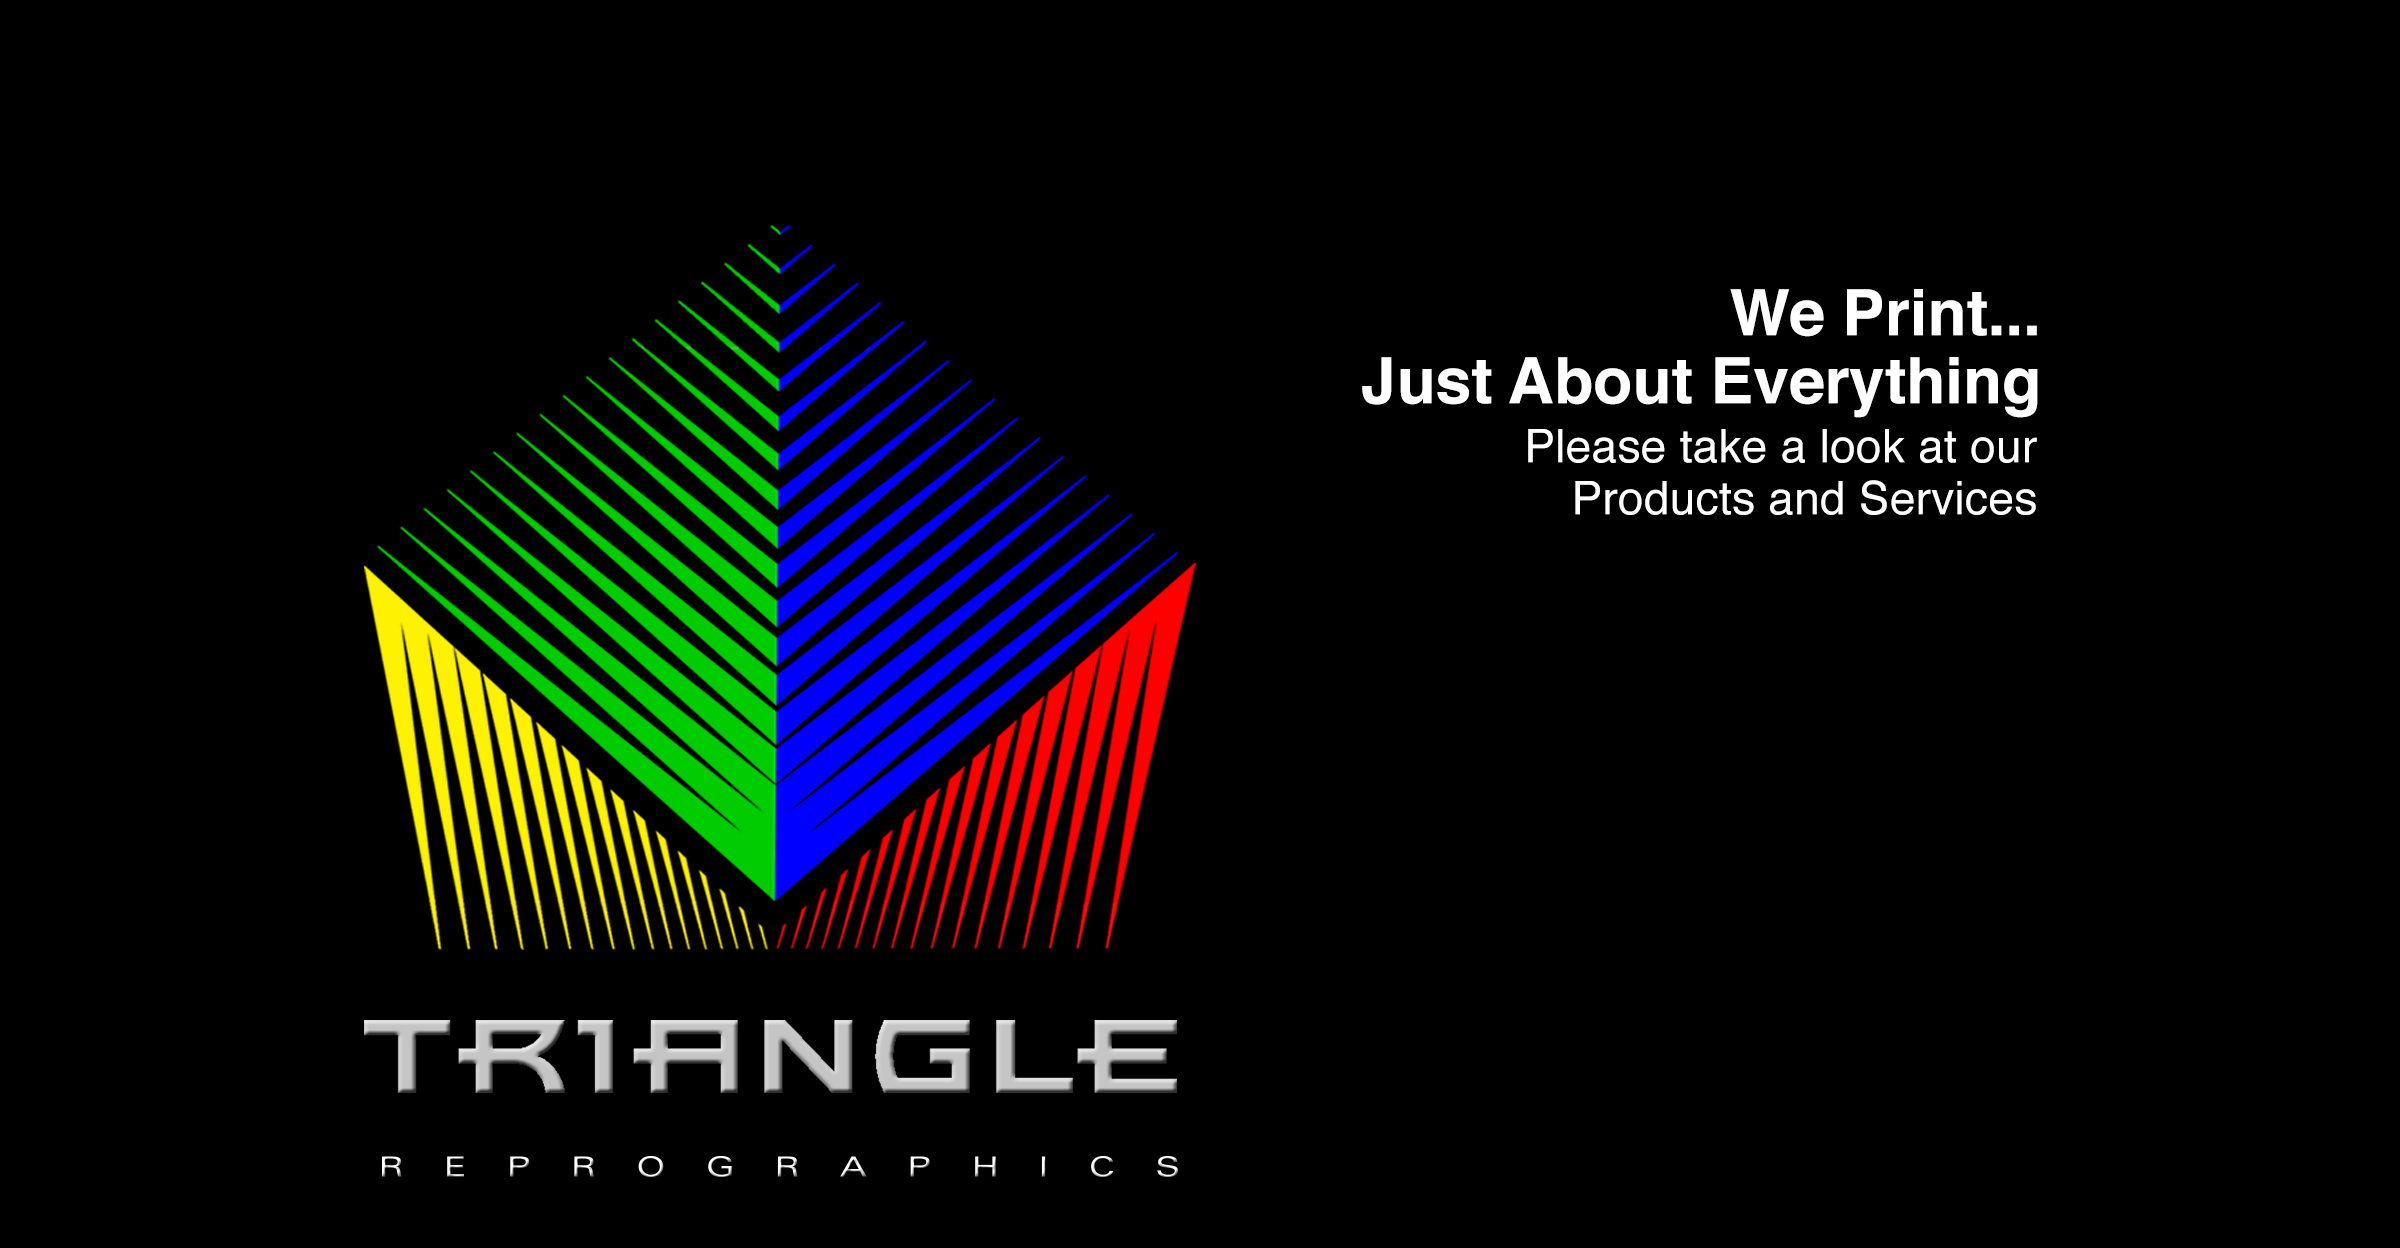 Triangle Reprographics Logo and Tag line - We Print Just About Everything